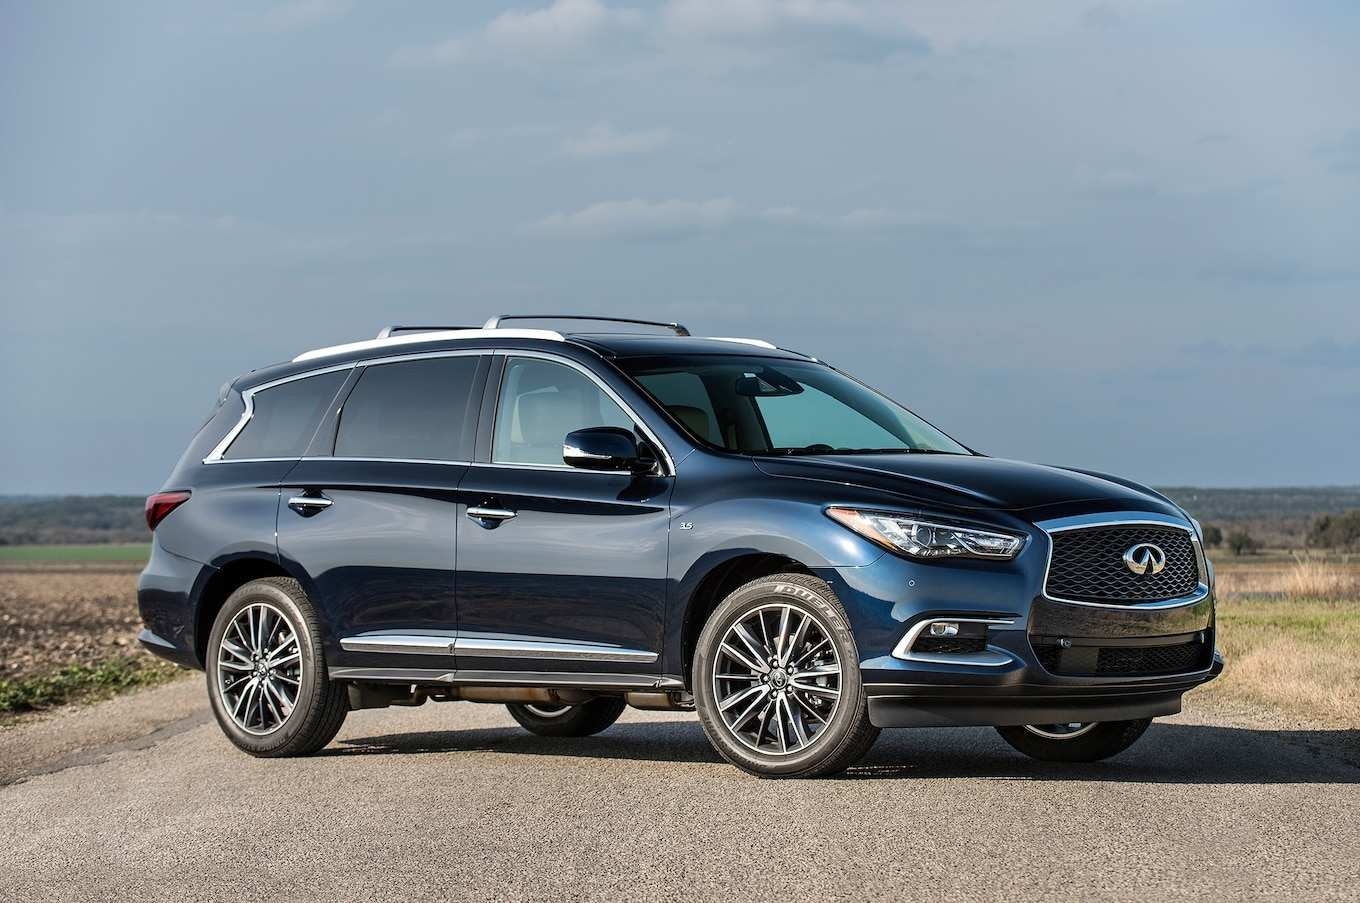 53 New 2020 Infiniti Qx60 Redesign And Review